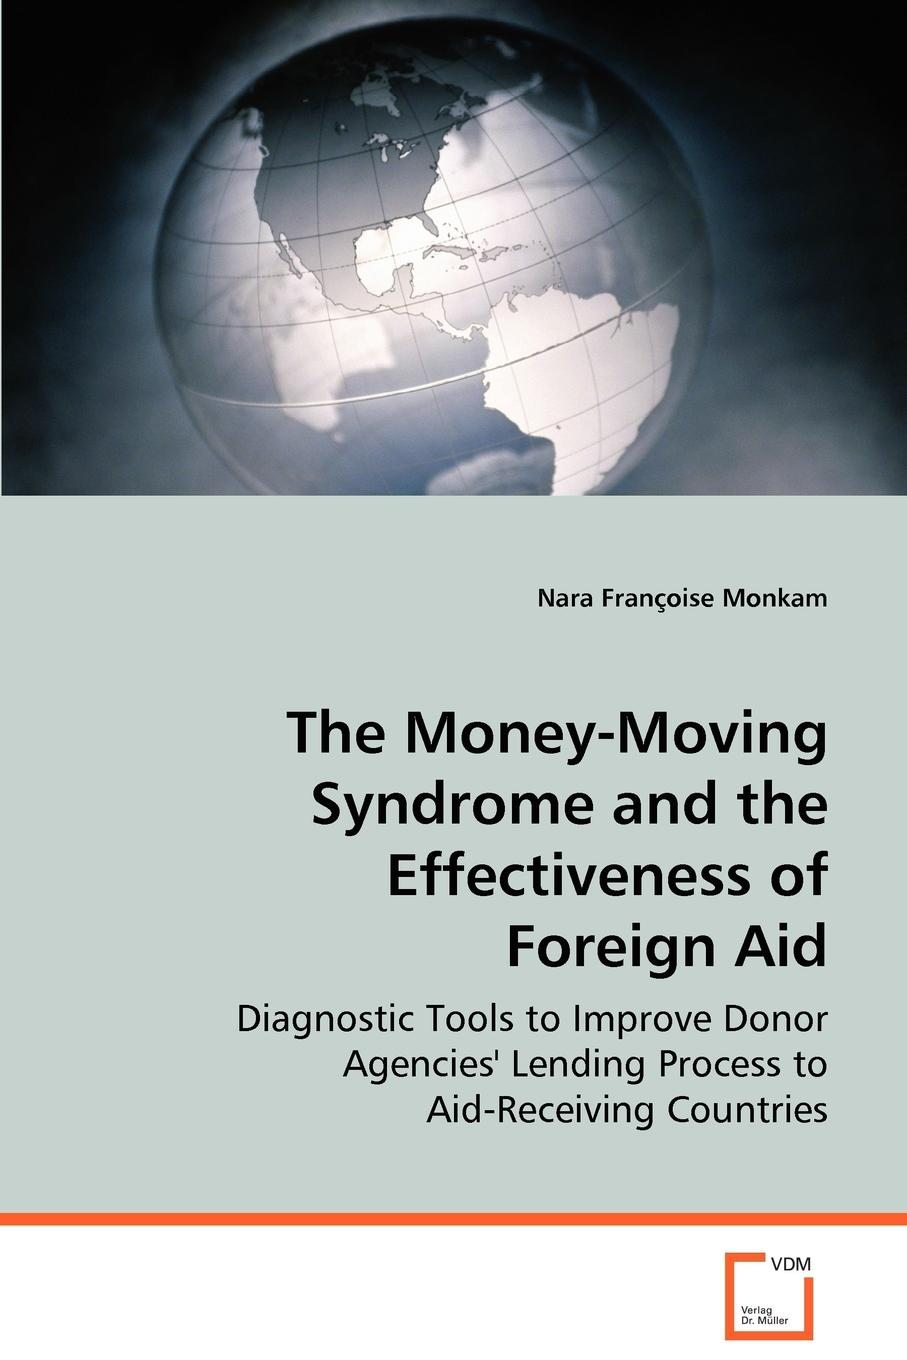 Nara Françoise Monkam The Money-Moving Syndrome and the Effectiveness of